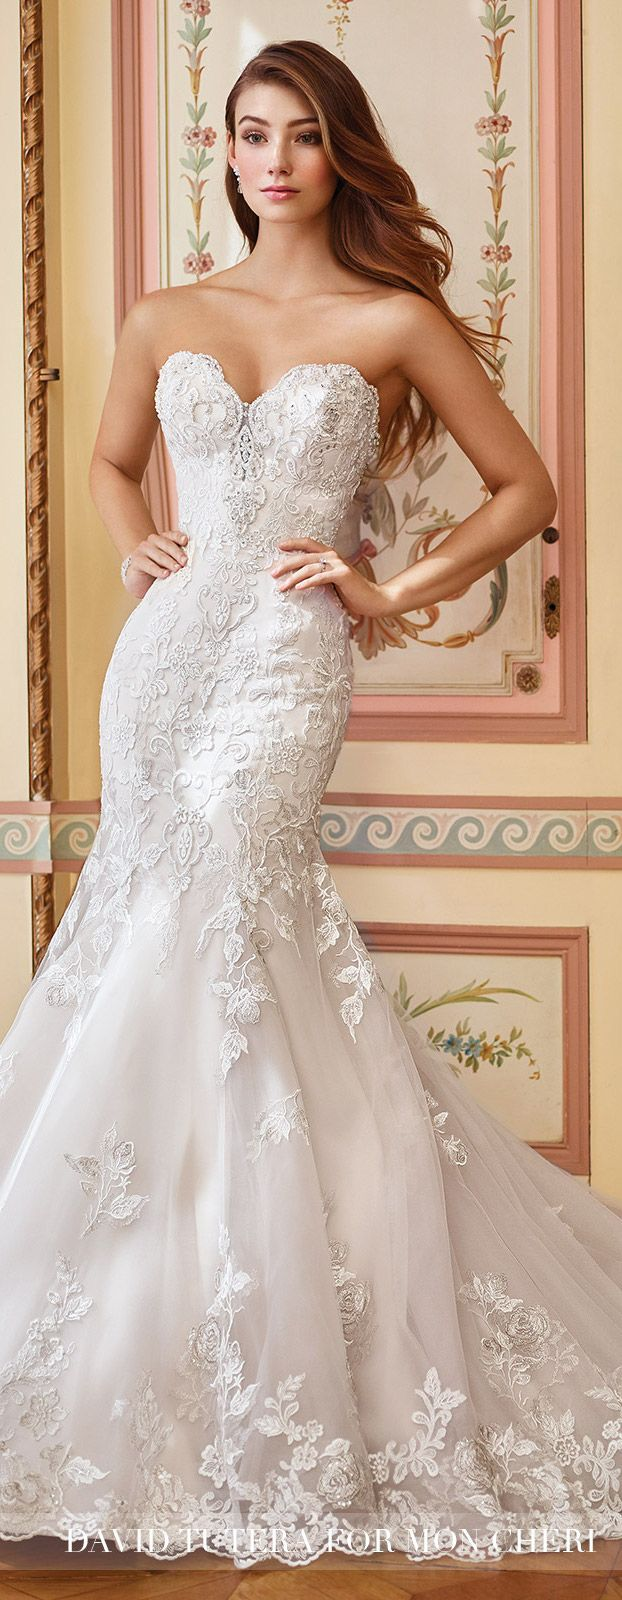 Wedding Dress by David Tutera for Mon Cheri | Style No. » 117284 Danae